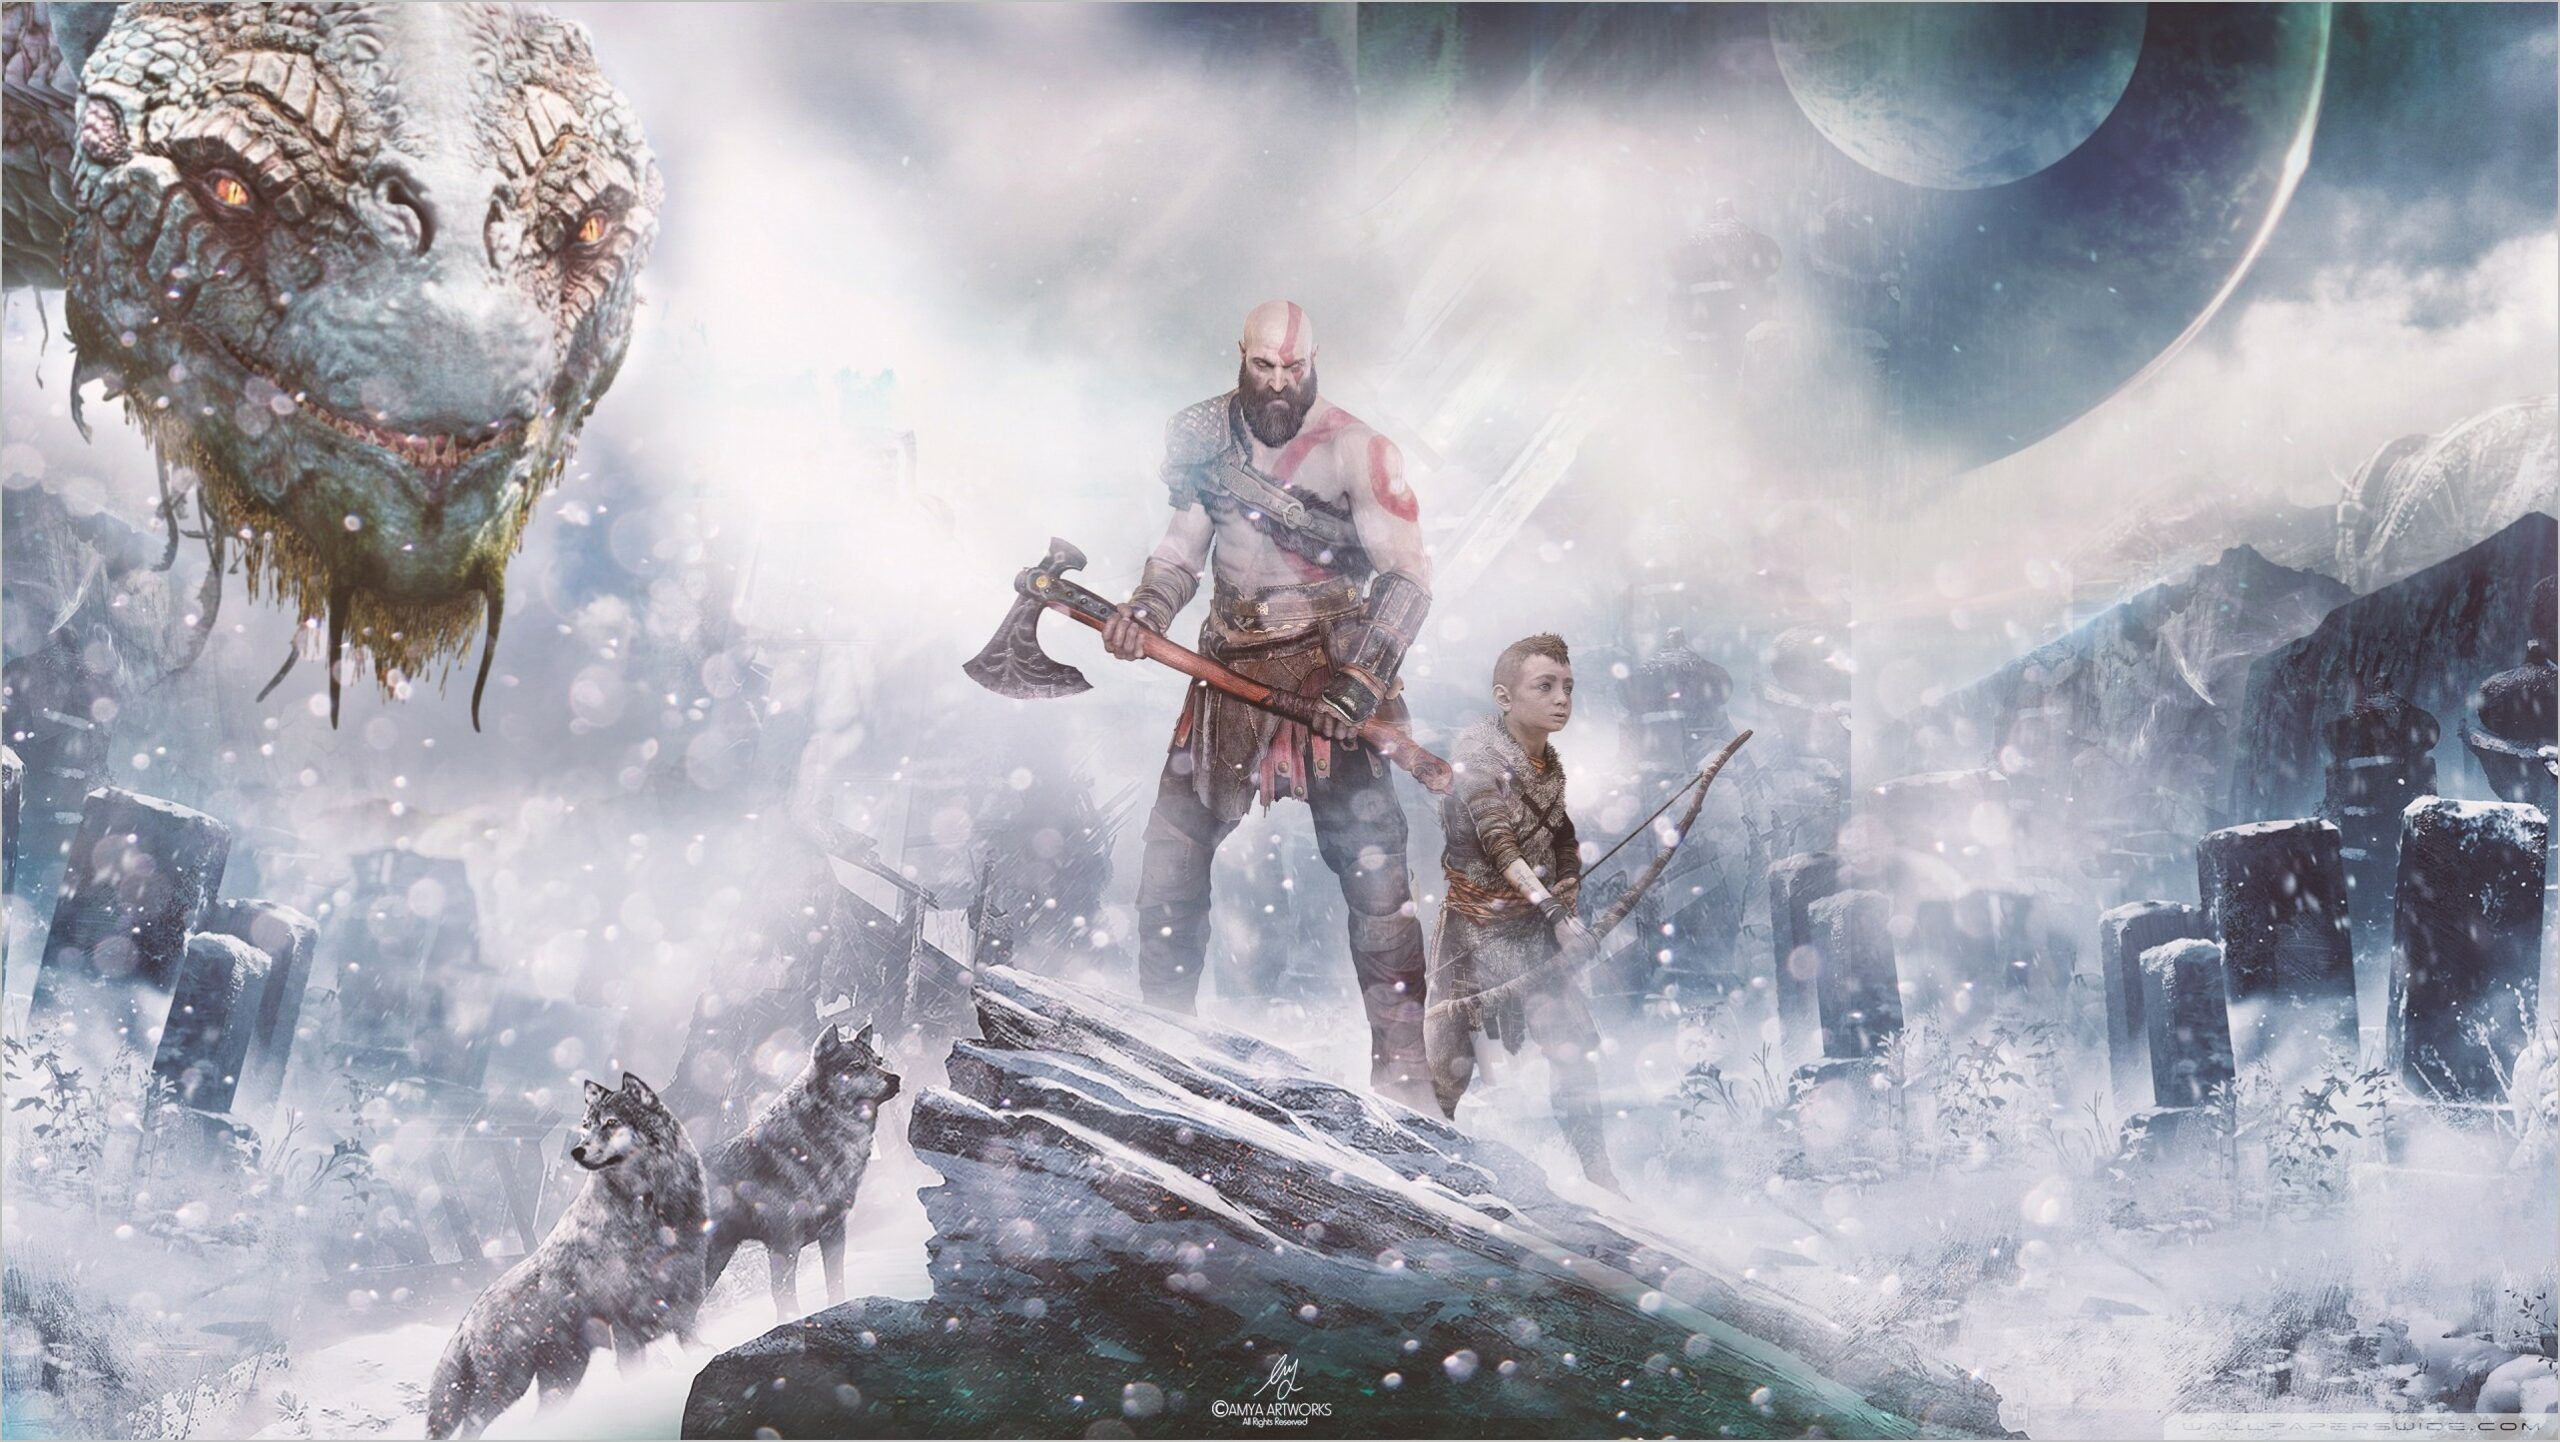 Best Ps4 Wallpapers 4k In 2020 God Of War New Gods War